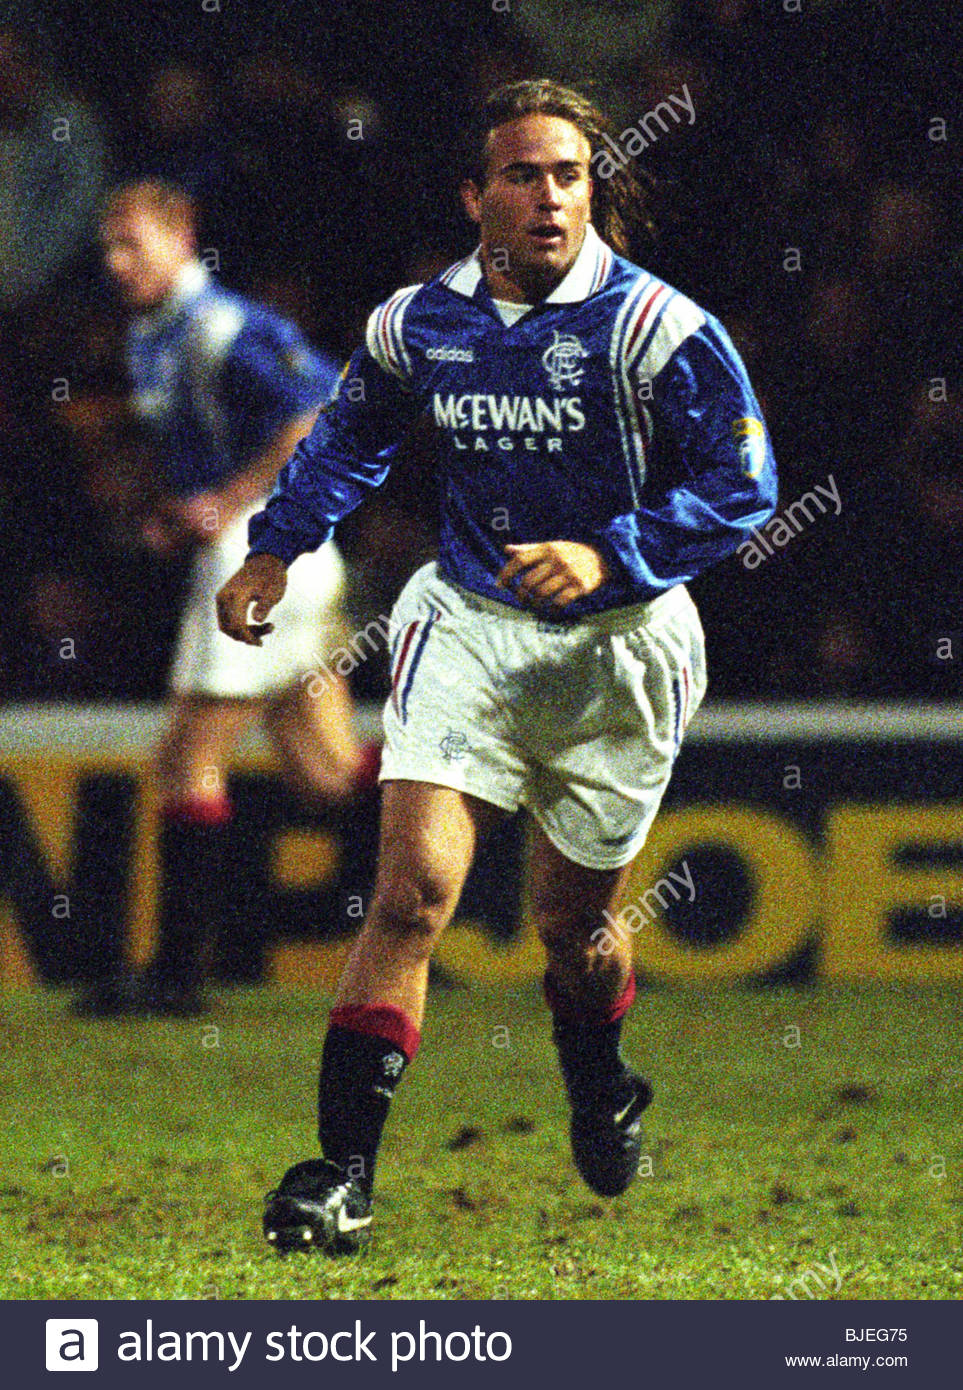 18/01/97 BELL'S PREMIER DIVISION MOTHERWELL V RANGERS (1-3) FIR PARK - MOTHERWELL Sebastian Rozental makes his - Stock Image